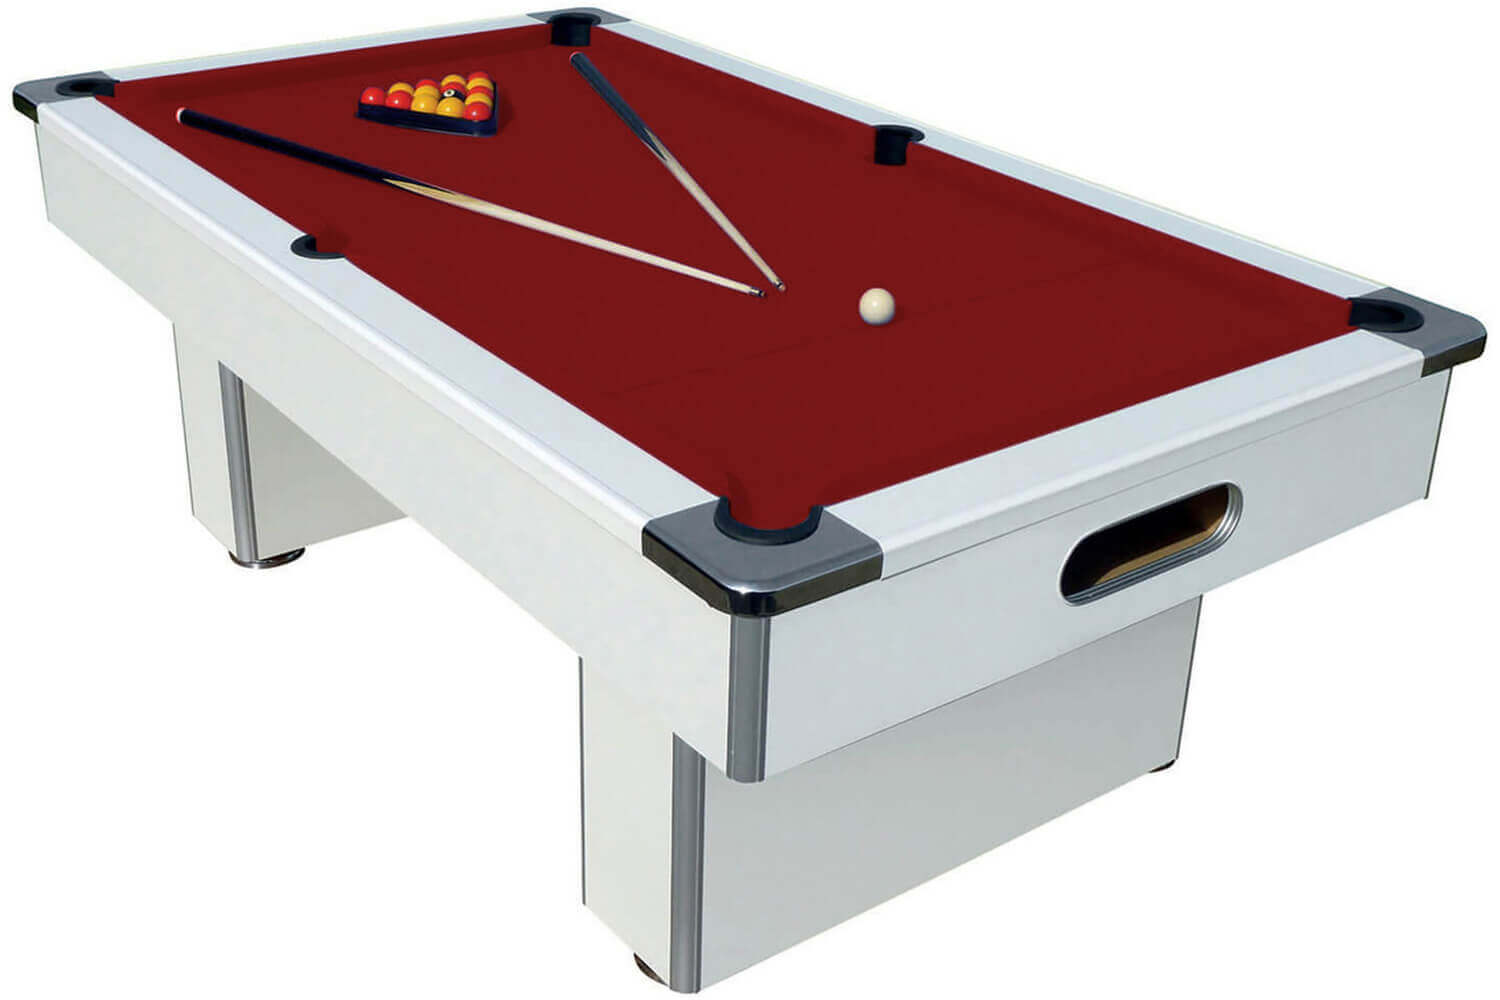 Slimline pool table 6 ft 7 ft liberty games for Table 6 feet